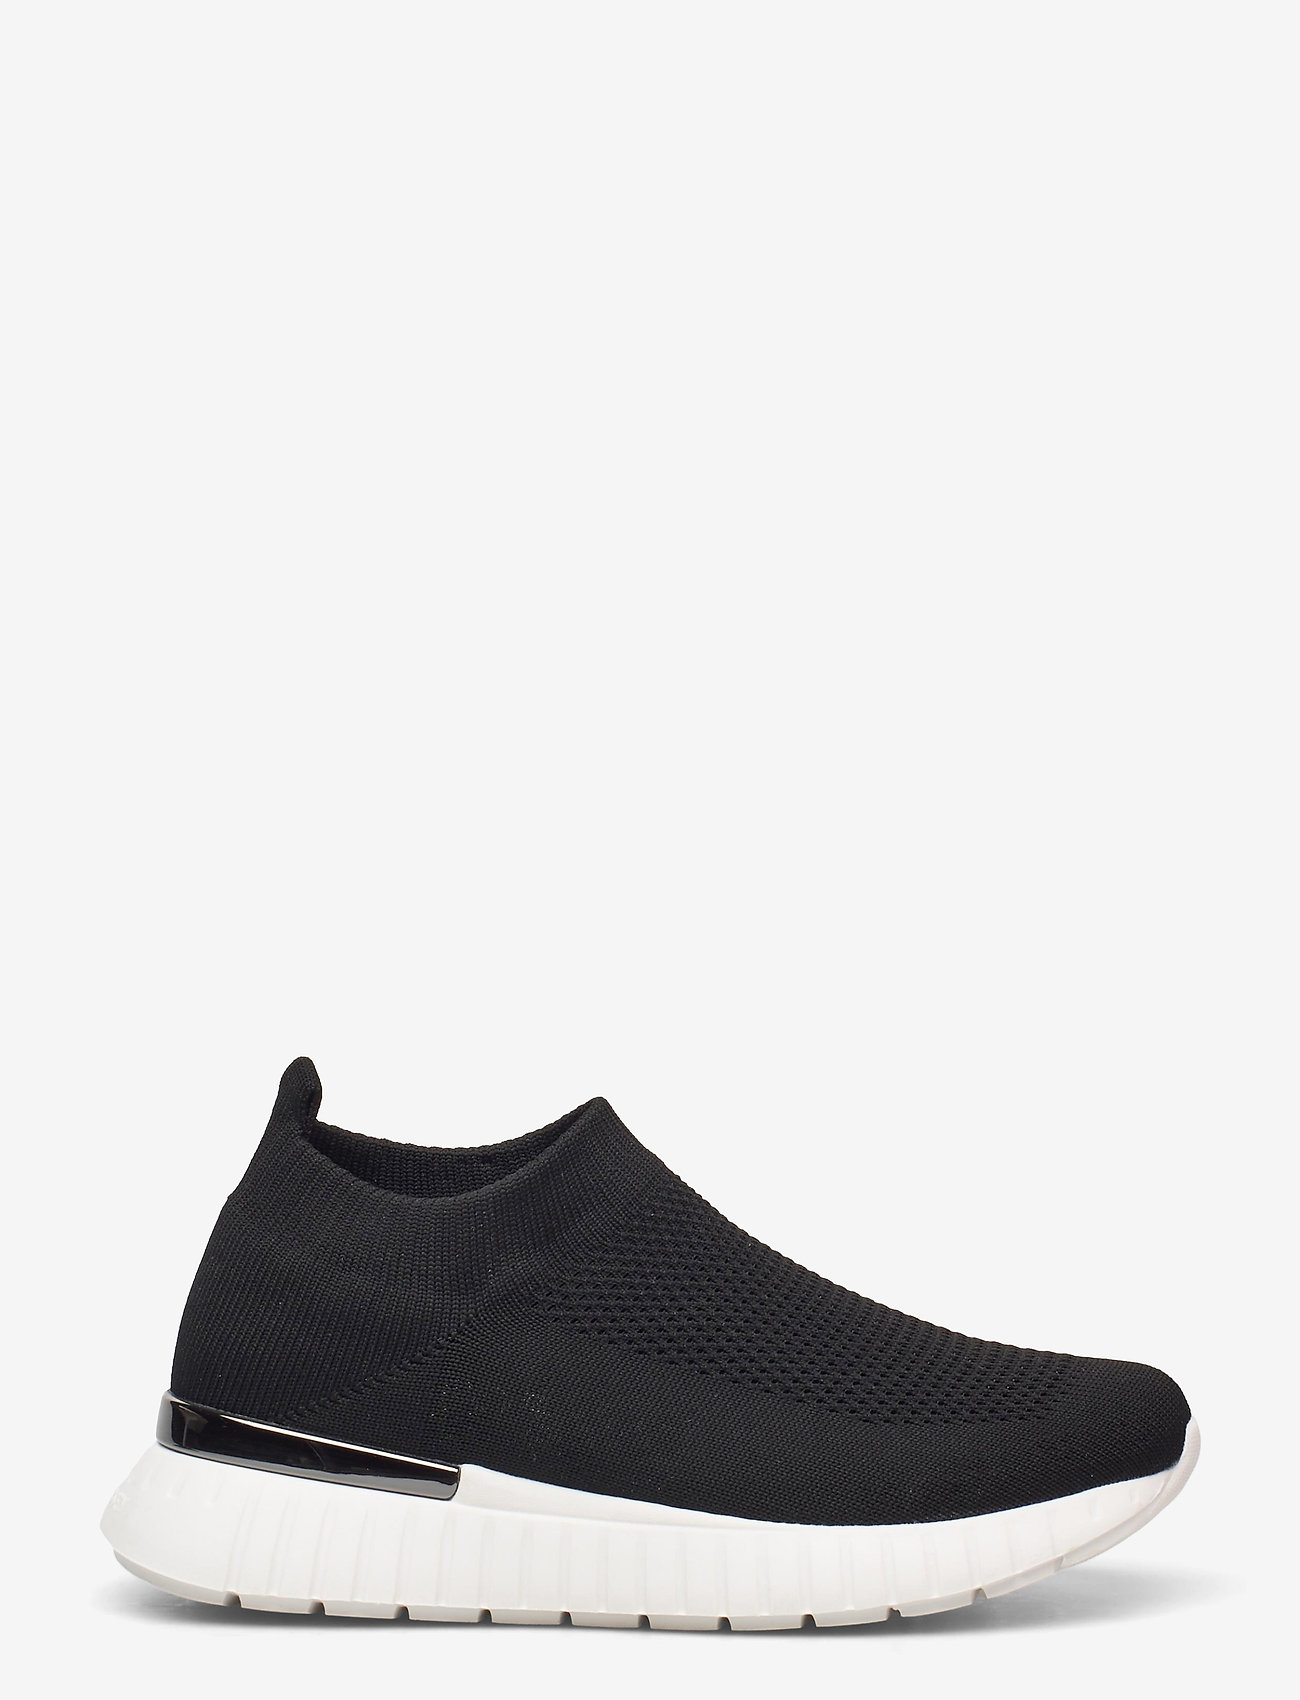 Ilse Jacobsen - Sneakers - slip-on sneakers - black - 1